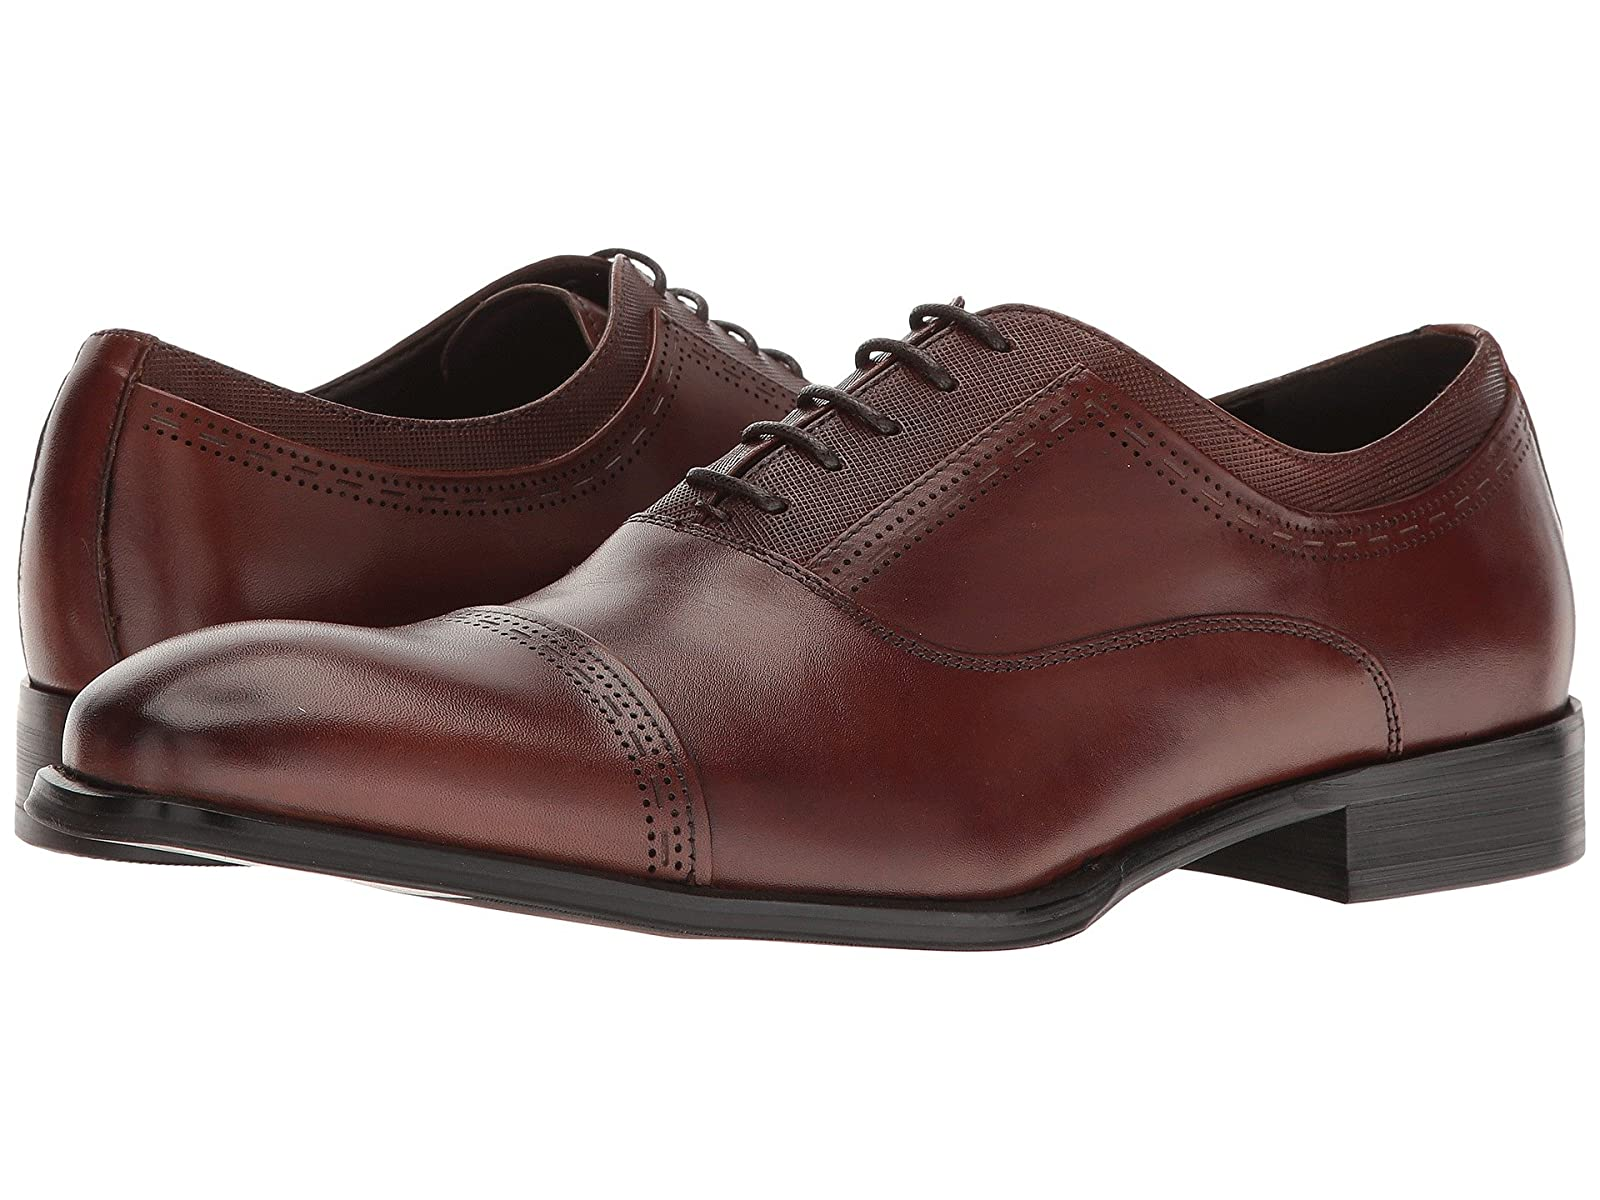 Kenneth Cole Reaction Pull OverCheap and distinctive eye-catching shoes